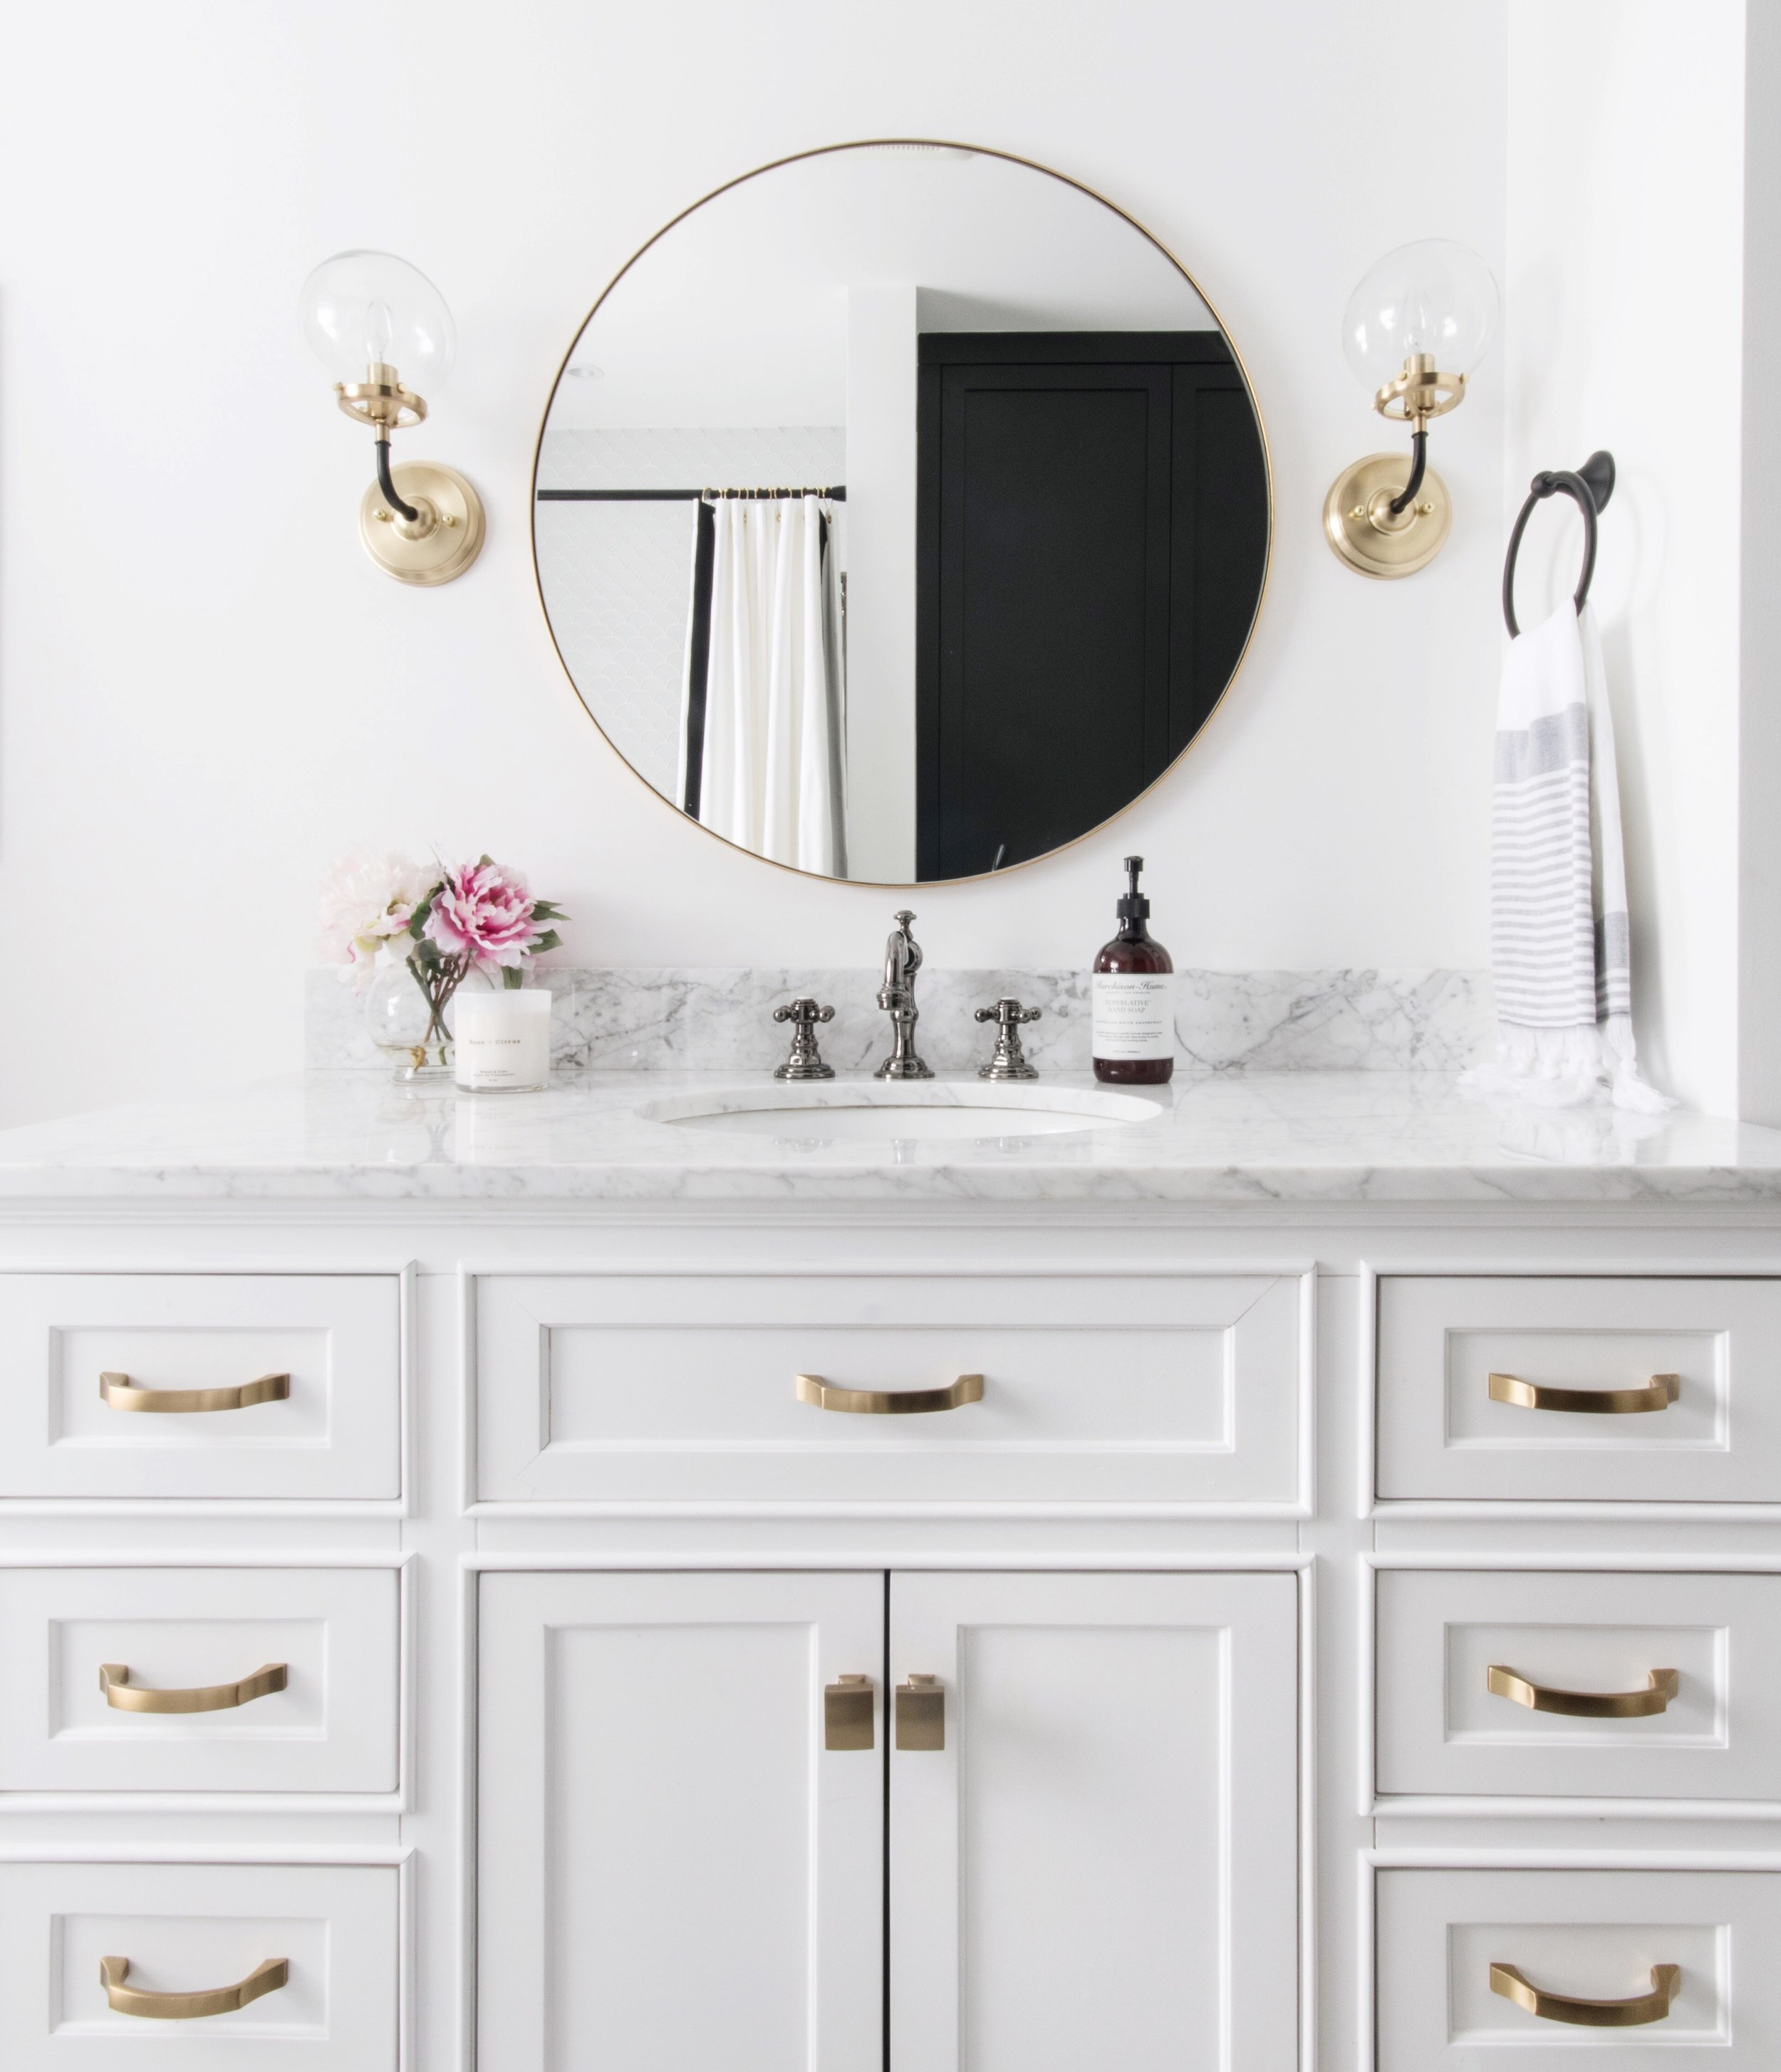 How-to style a powder room or master ensuite. Funky Tile Farmhouse Style Powder Room Design by Ottawa Interior Design Firm Leclair Decor